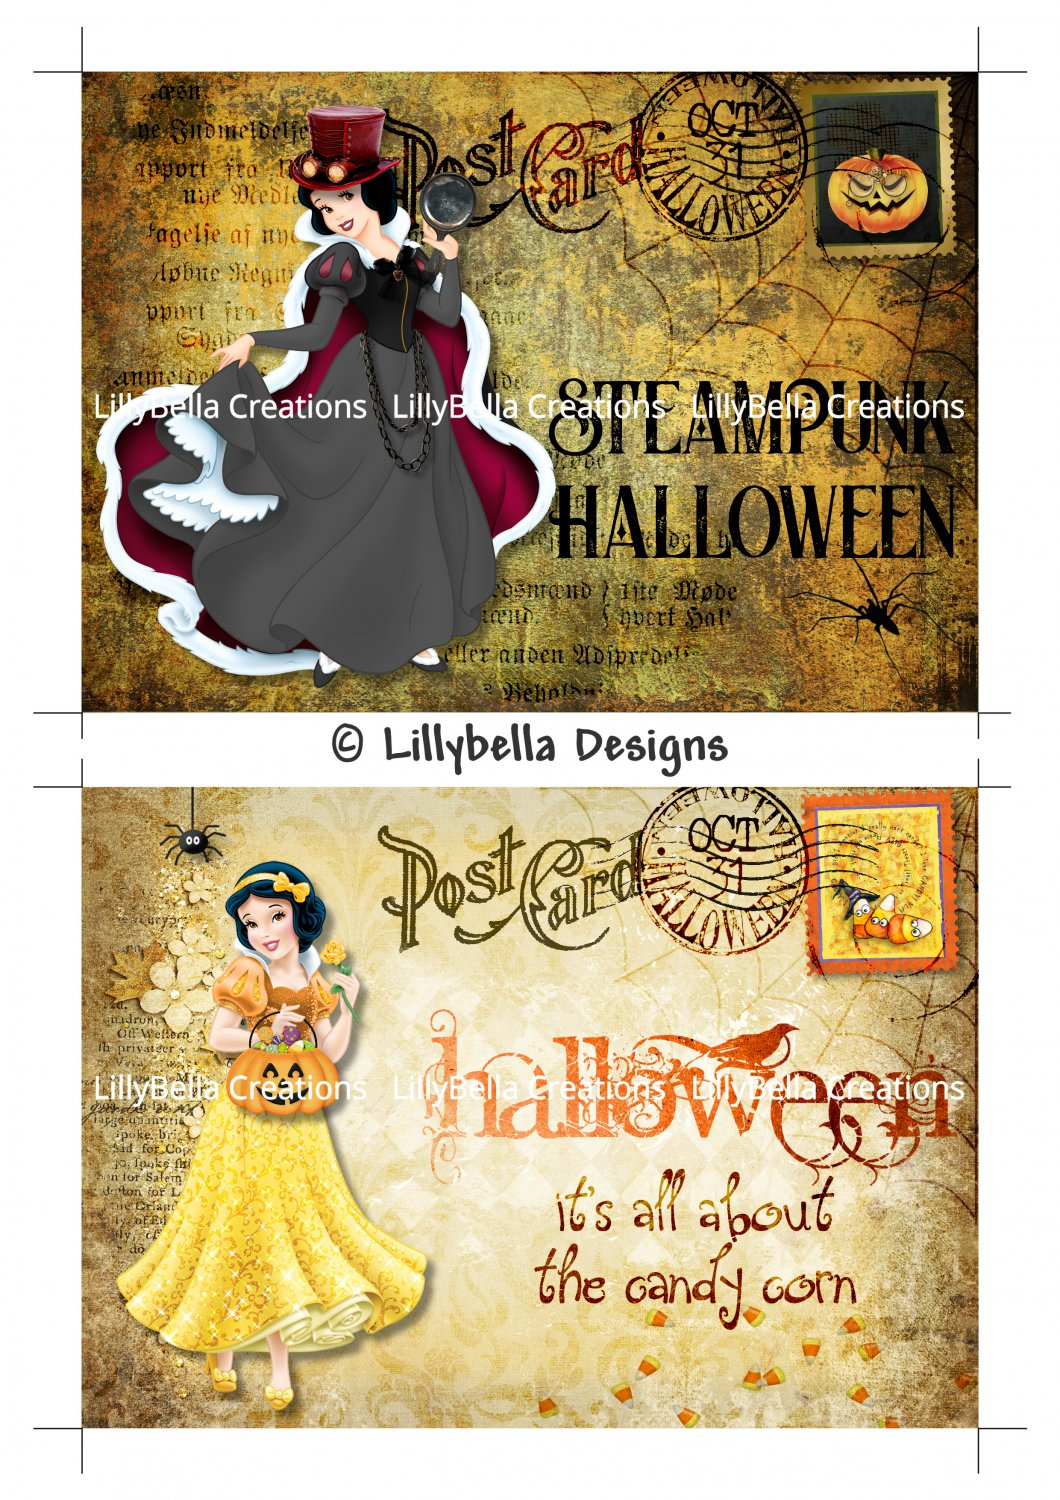 Halloween Snow White - 5 x 7 inch Color Postcards - Vintage Style ~ Steampunk & Candy Corn